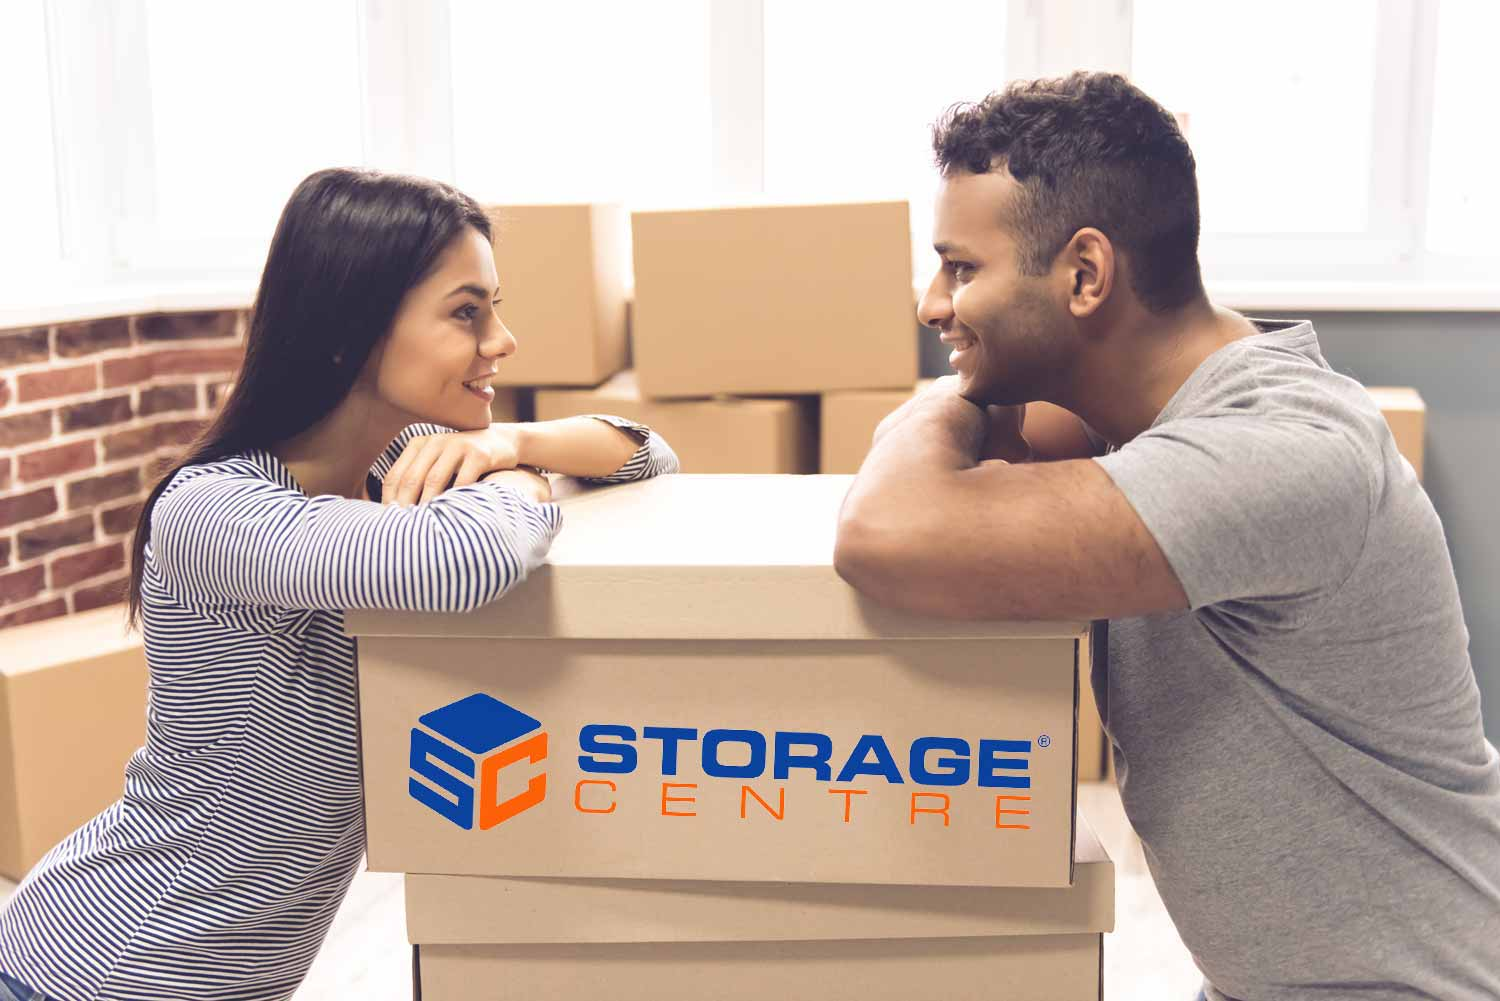 Storage Centre - Is a proudly Canadian Self Storage company run by industry veterans.